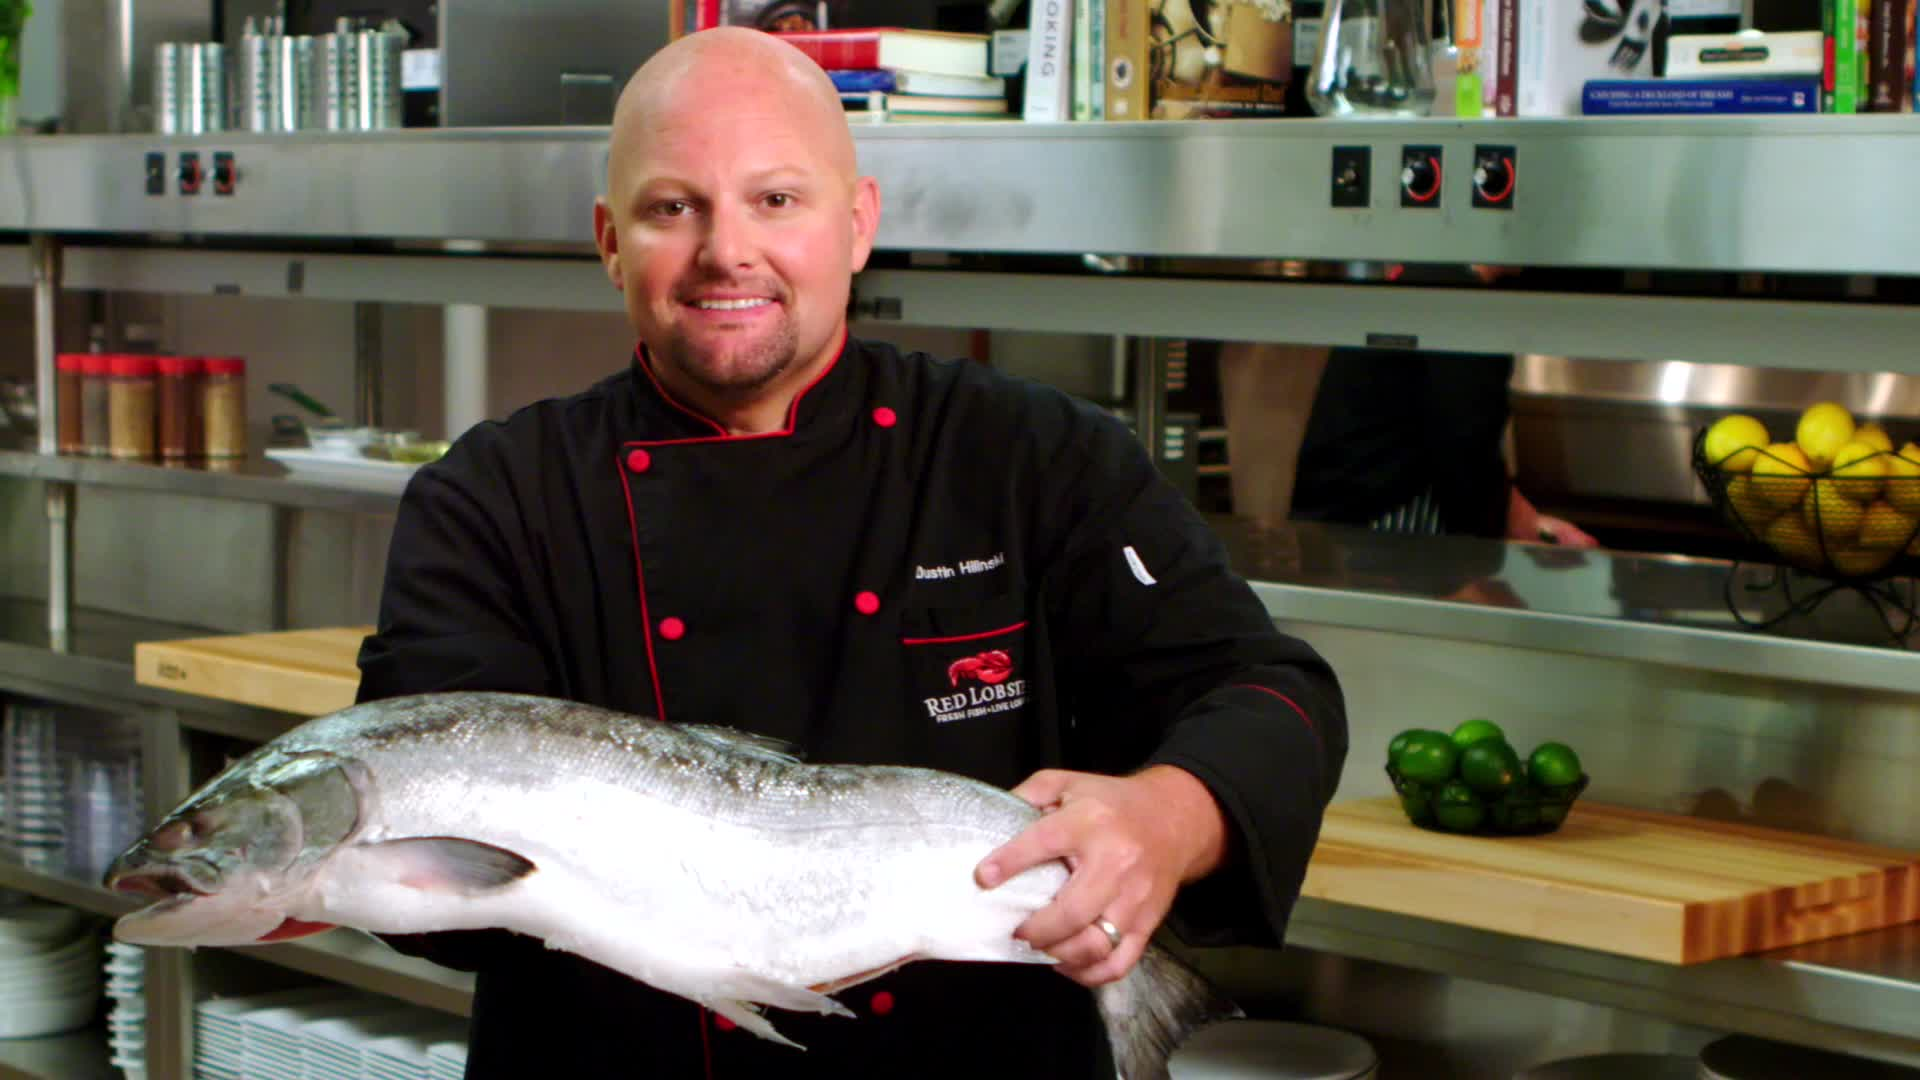 Chef Dustin Hilinski shares some fun facts about the new, fresh Wild-Caught Alaska Sockeye and Coho salmon that is being served now at Red Lobster. But hurry - this salmon is available only for a limited time while it is in season.